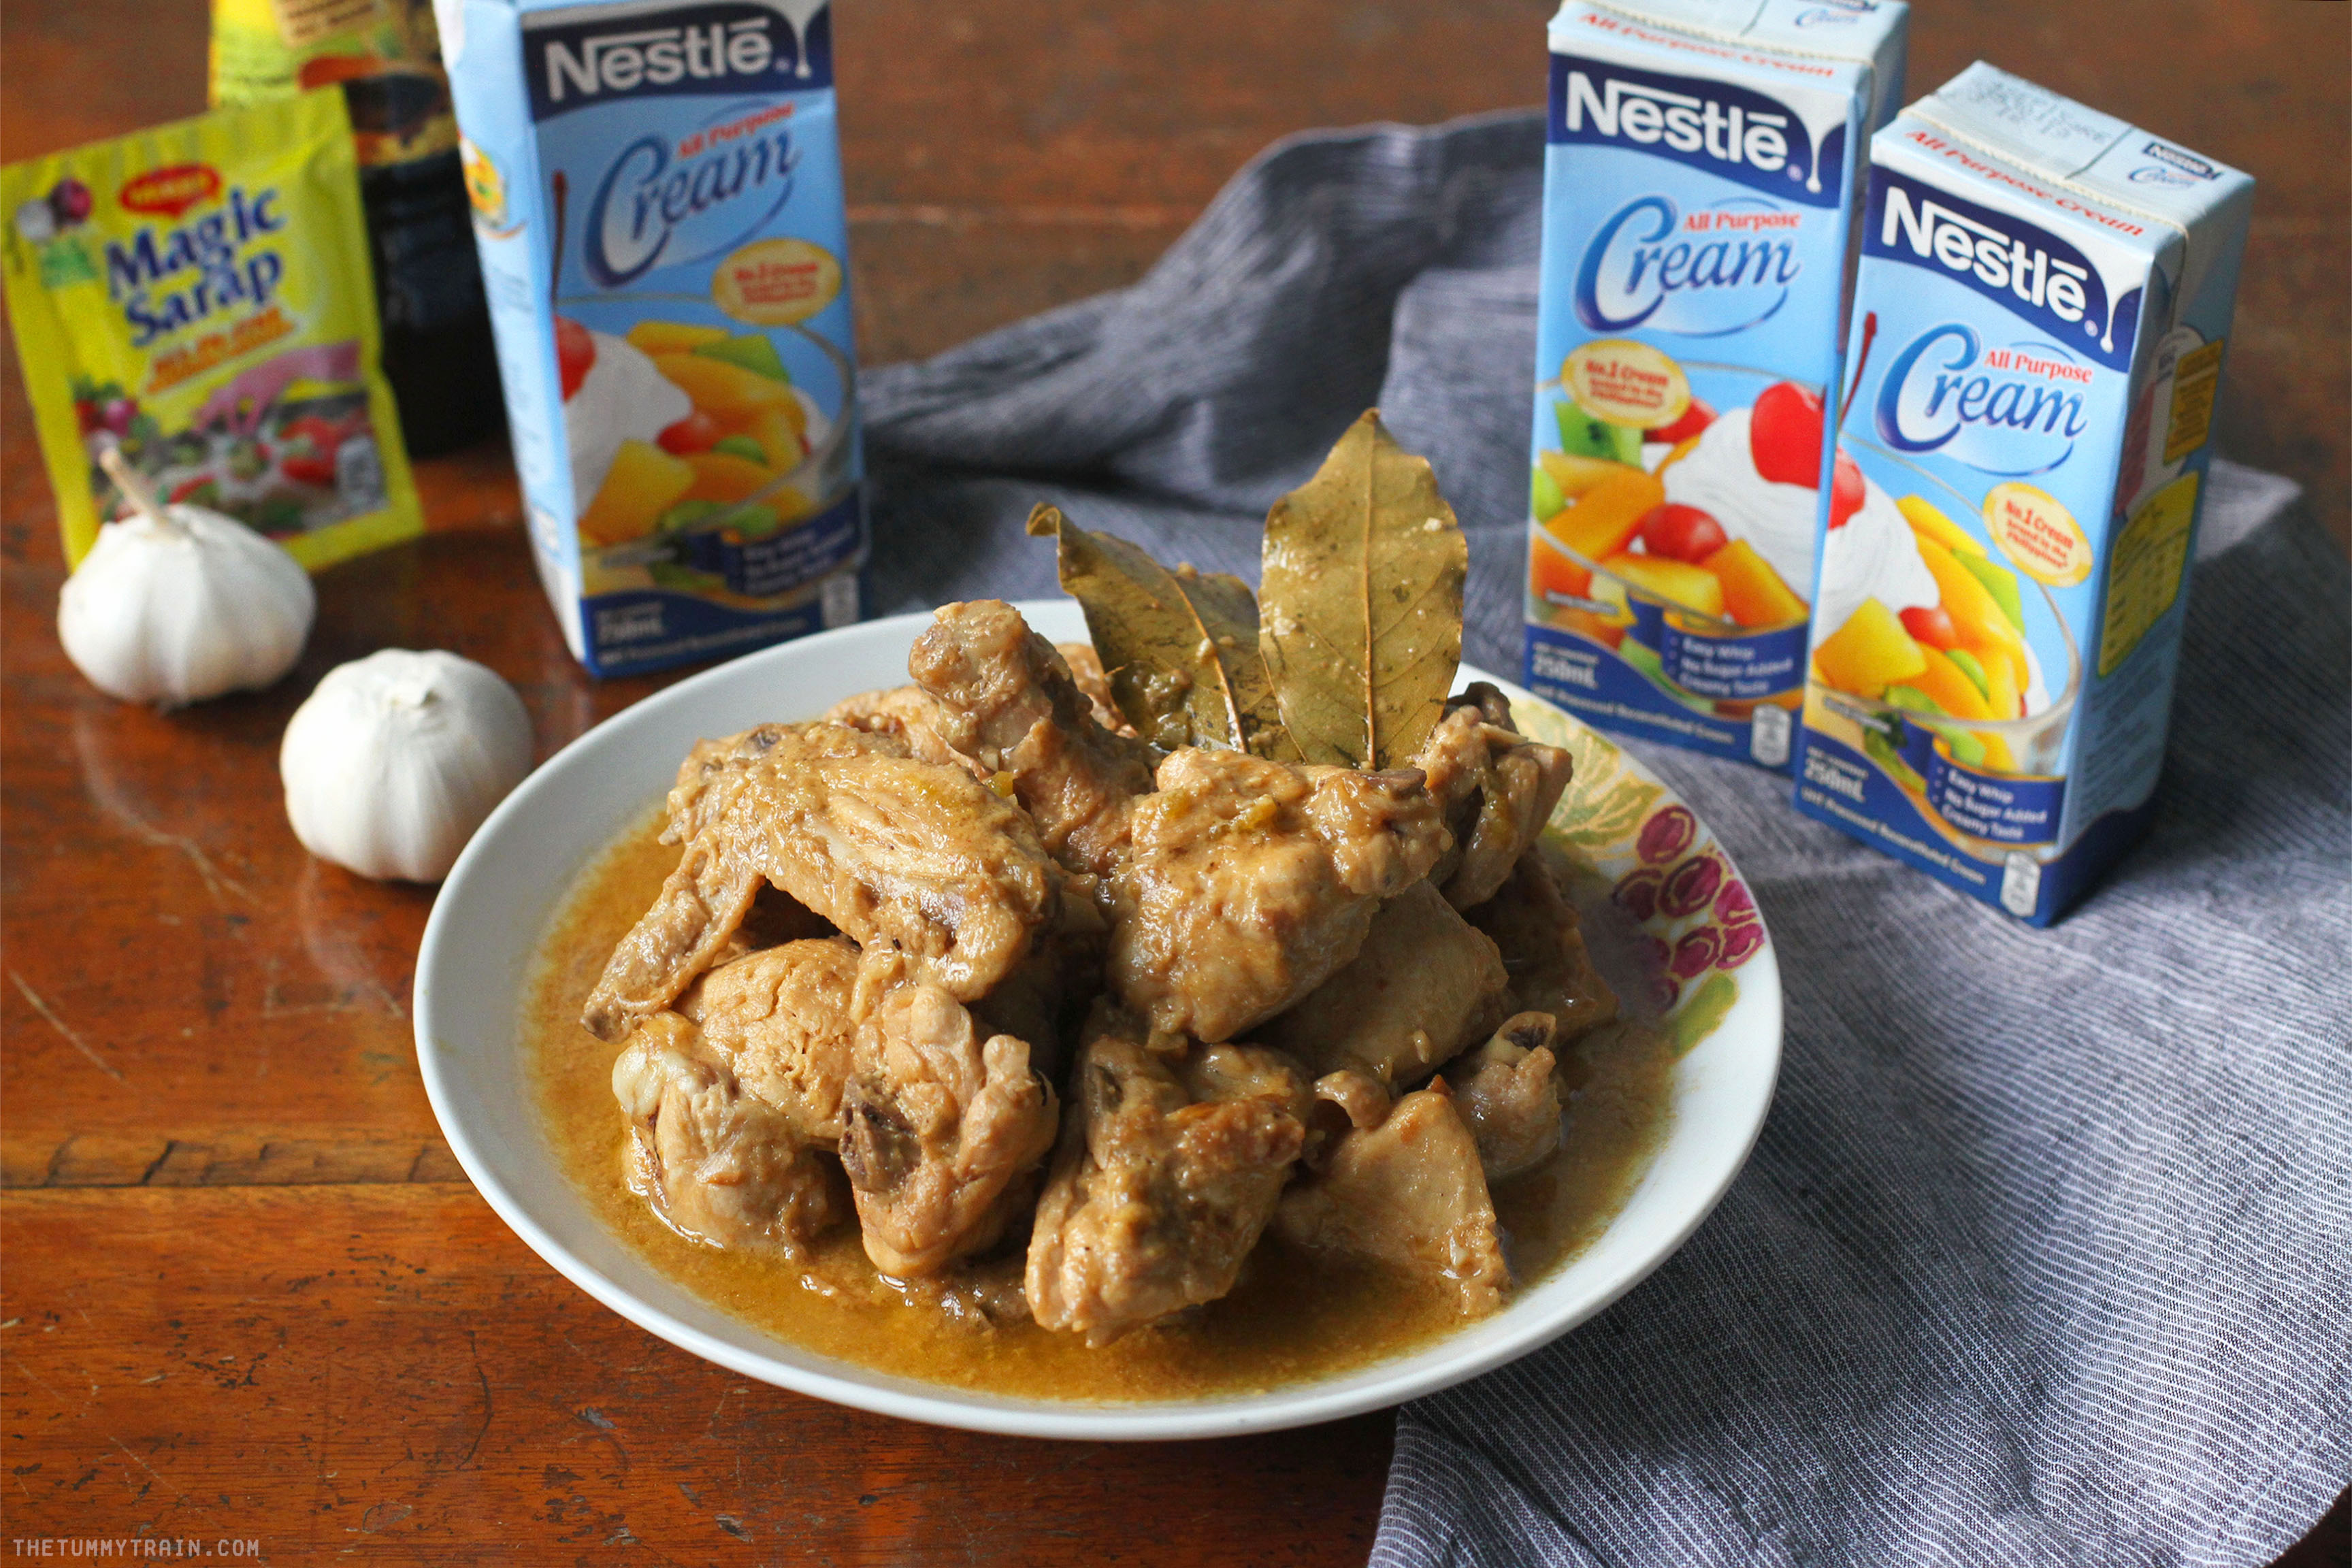 Nestle Creamy Chicken Adobo 1 - Creamy Chicken Adobo recipe at home with Nestle All Purpose Cream